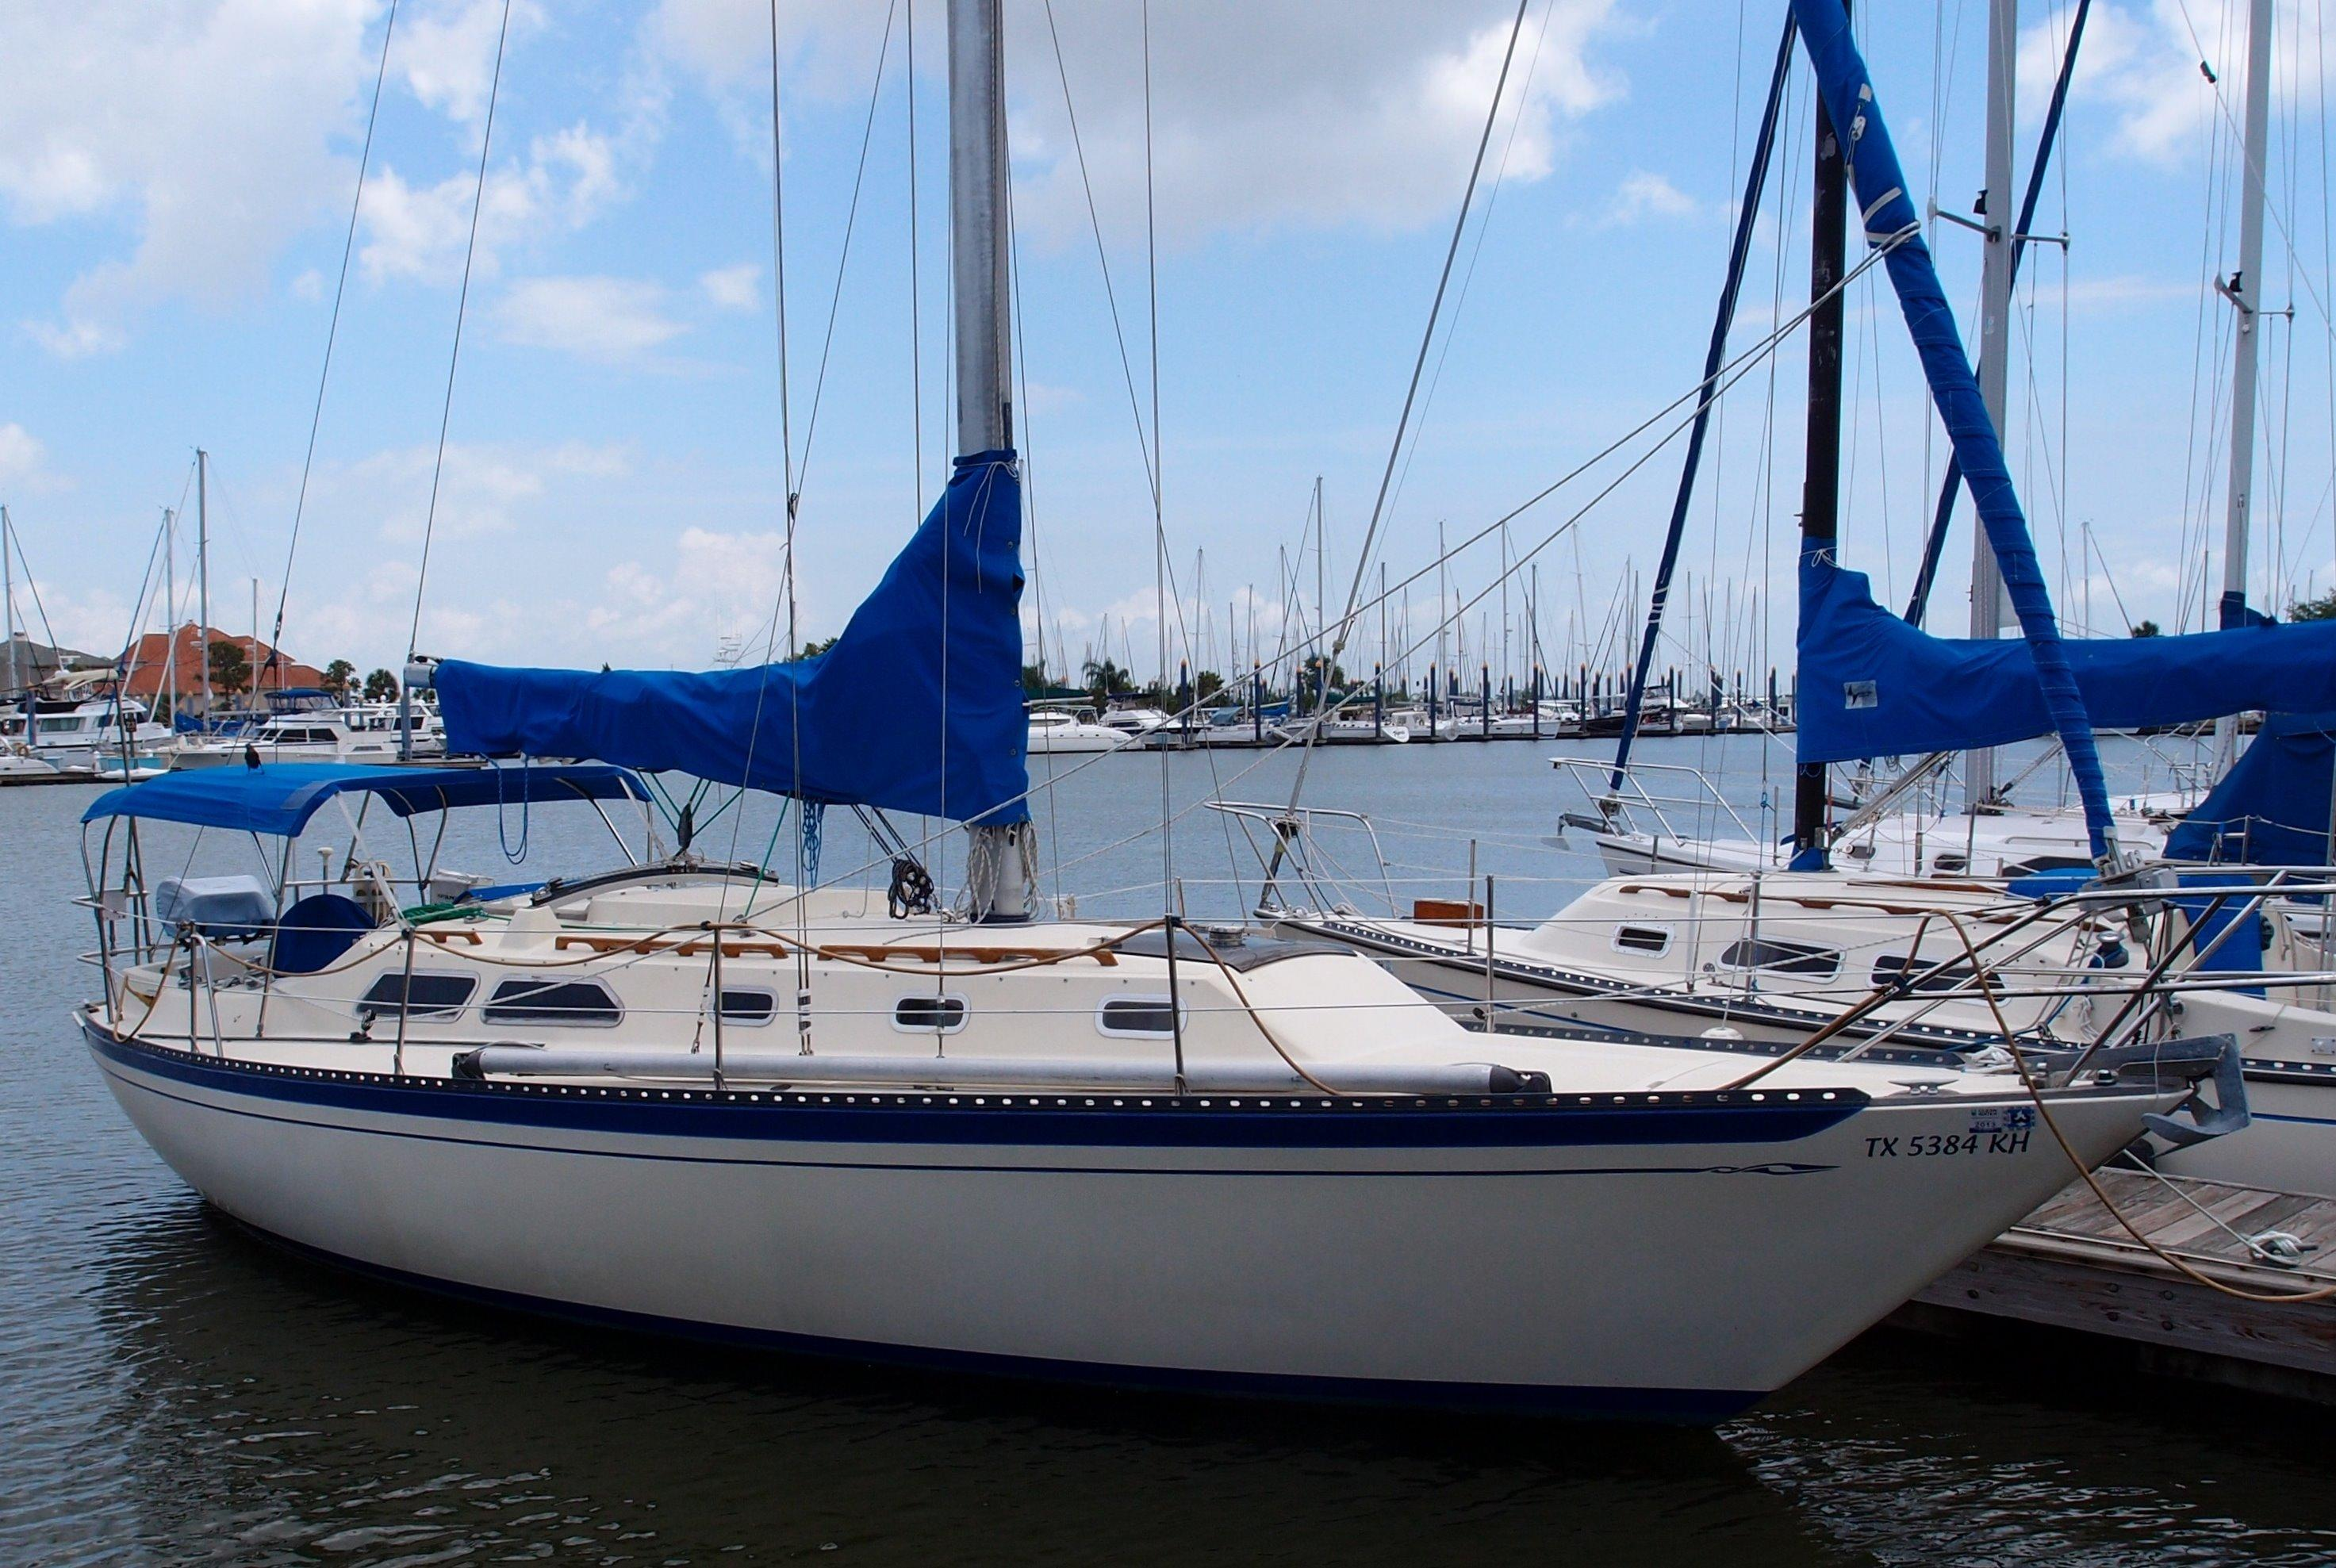 1977 Islander 36 Sail Boat For Sale - www.yachtworld.com